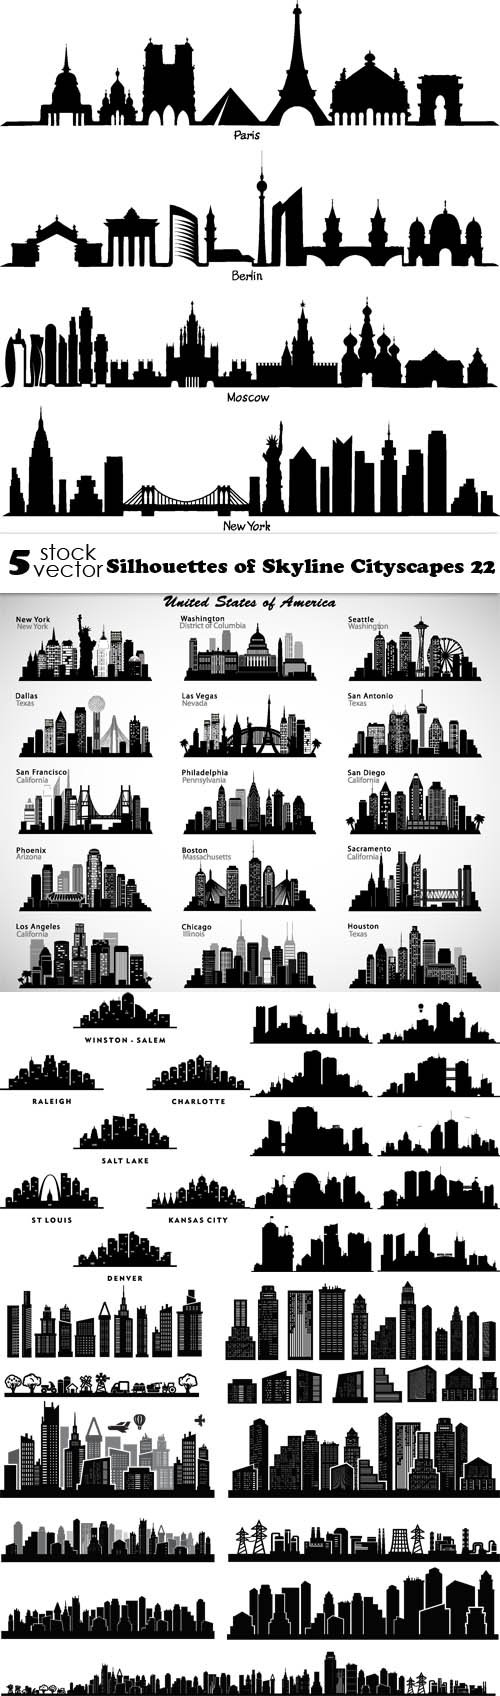 Vectors - Silhouettes of Skyline Cityscapes 22